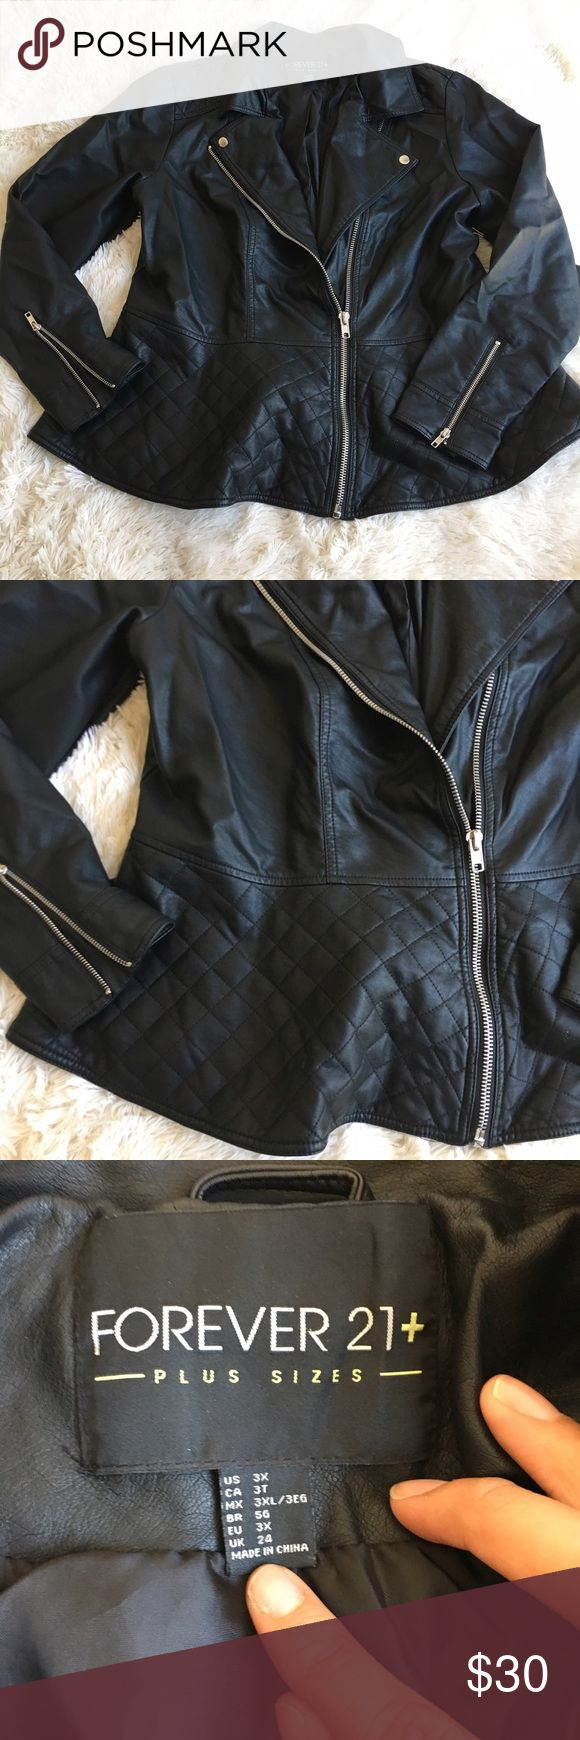 Forever 21 Faux/ Vegan Leather Peplum Moto Jacket Excellent condition. Tag is attached. Forever 21 Jackets & Coats